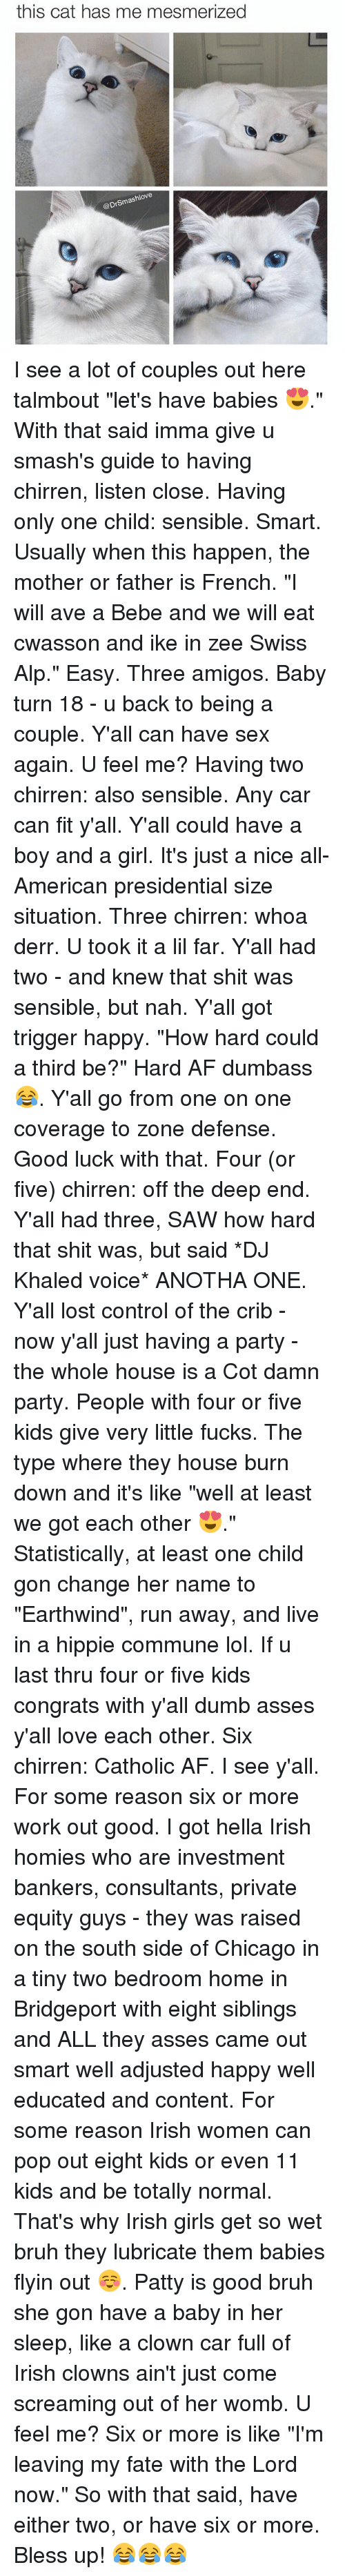 """Derr: this cat has me mesmerized  @DrSmashlove I see a lot of couples out here talmbout """"let's have babies 😍."""" With that said imma give u smash's guide to having chirren, listen close. Having only one child: sensible. Smart. Usually when this happen, the mother or father is French. """"I will ave a Bebe and we will eat cwasson and ike in zee Swiss Alp."""" Easy. Three amigos. Baby turn 18 - u back to being a couple. Y'all can have sex again. U feel me? Having two chirren: also sensible. Any car can fit y'all. Y'all could have a boy and a girl. It's just a nice all-American presidential size situation. Three chirren: whoa derr. U took it a lil far. Y'all had two - and knew that shit was sensible, but nah. Y'all got trigger happy. """"How hard could a third be?"""" Hard AF dumbass 😂. Y'all go from one on one coverage to zone defense. Good luck with that. Four (or five) chirren: off the deep end. Y'all had three, SAW how hard that shit was, but said *DJ Khaled voice* ANOTHA ONE. Y'all lost control of the crib - now y'all just having a party - the whole house is a Cot damn party. People with four or five kids give very little fucks. The type where they house burn down and it's like """"well at least we got each other 😍."""" Statistically, at least one child gon change her name to """"Earthwind"""", run away, and live in a hippie commune lol. If u last thru four or five kids congrats with y'all dumb asses y'all love each other. Six chirren: Catholic AF. I see y'all. For some reason six or more work out good. I got hella Irish homies who are investment bankers, consultants, private equity guys - they was raised on the south side of Chicago in a tiny two bedroom home in Bridgeport with eight siblings and ALL they asses came out smart well adjusted happy well educated and content. For some reason Irish women can pop out eight kids or even 11 kids and be totally normal. That's why Irish girls get so wet bruh they lubricate them babies flyin out ☺️. Patty is good bruh she gon have a baby in her slee"""